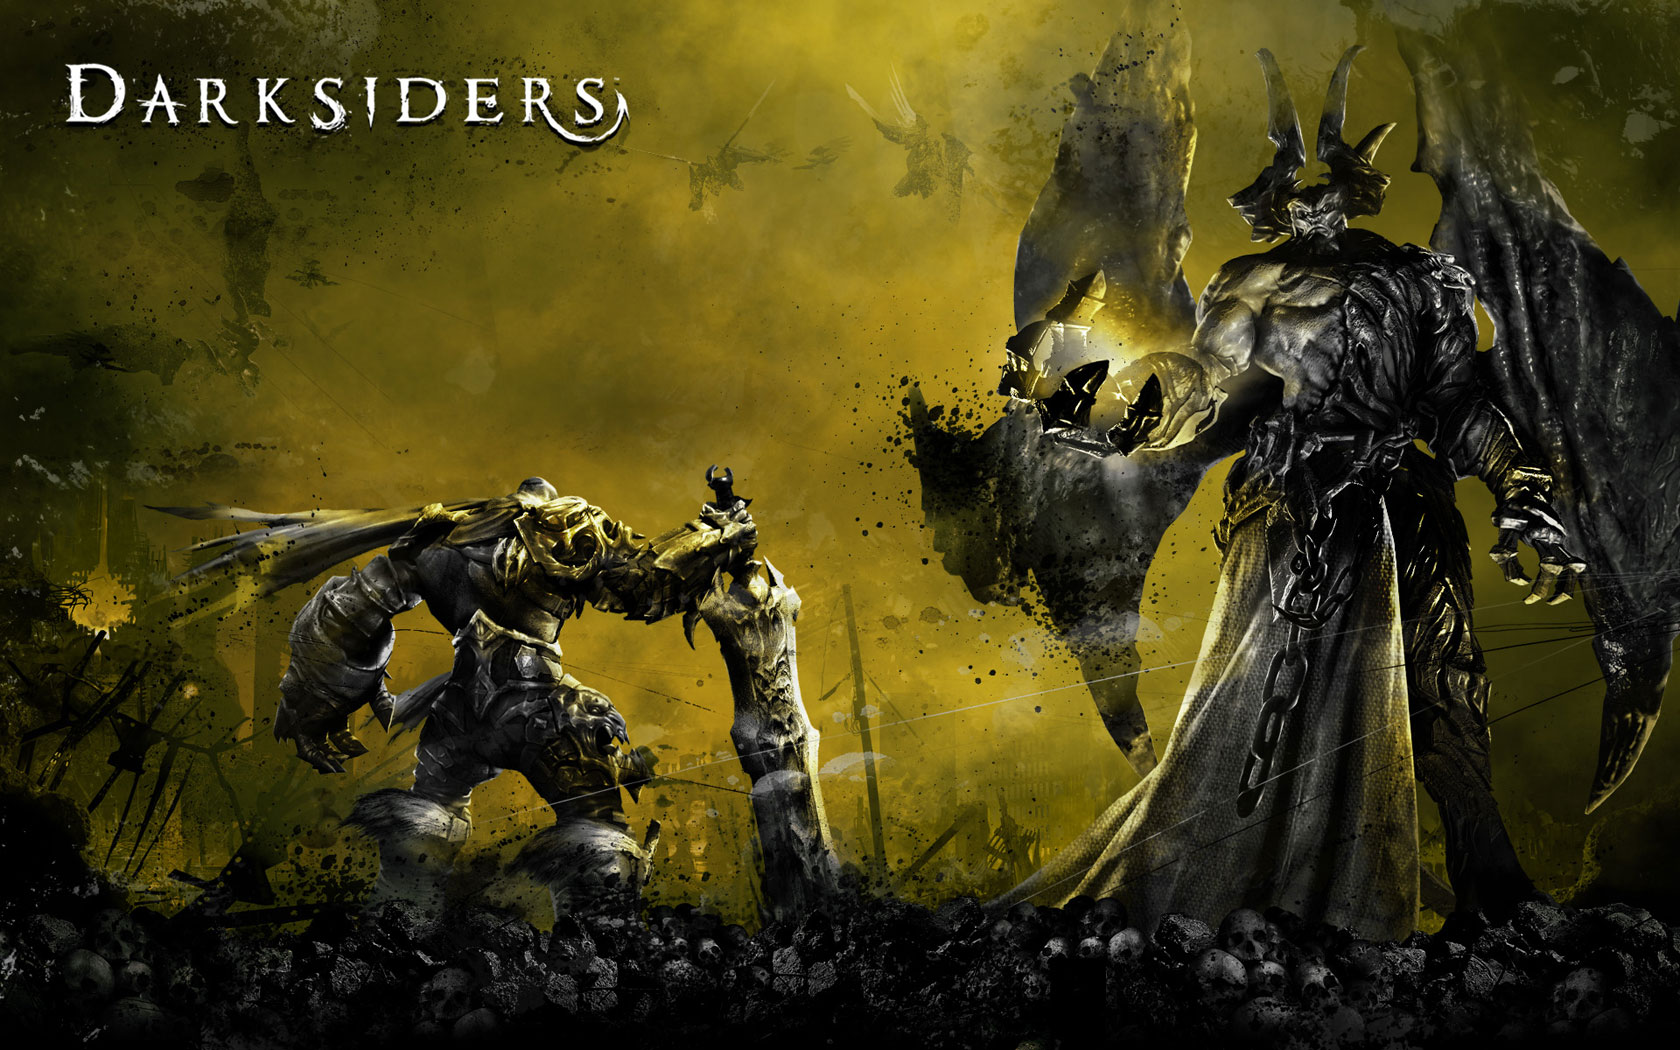 darksiders wallpaper 07 1680x1050 1680x1050